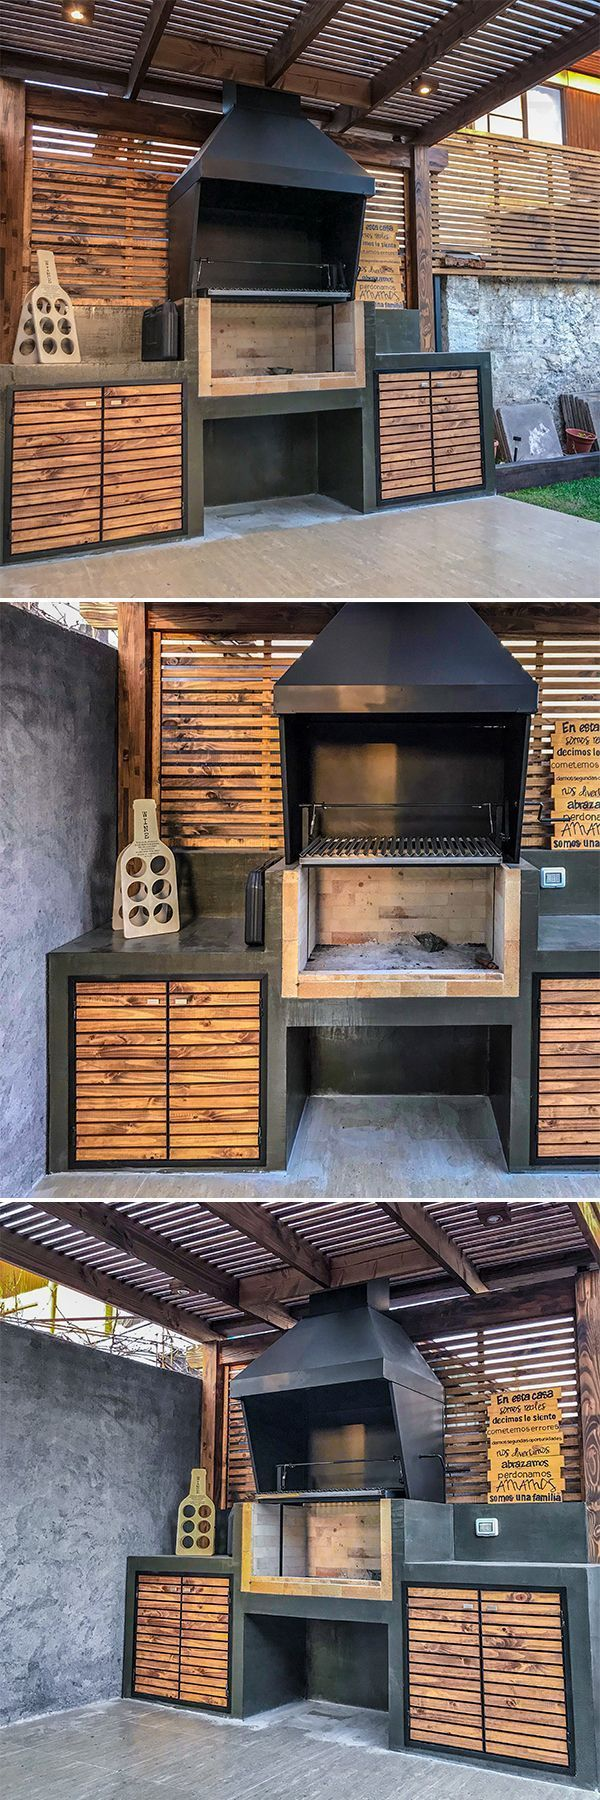 Pintogopin Club - Pintogopin Club Mode - Fashion -  For grilling, roasting  #roast meat #grilling #longhairstylesmale – – #OutdoorKuche  - #Club #easyhomedecor #fashion #homedecor2018 #homedecorchristmas #homedecorclassy #homedecoreclectic #homedecorentryway #homedecorluxury #homedecorsigns #homedecortips #homedecorvideos #homedecorwall #indianhomedecor #mode #pintogopin #retrohomedecor